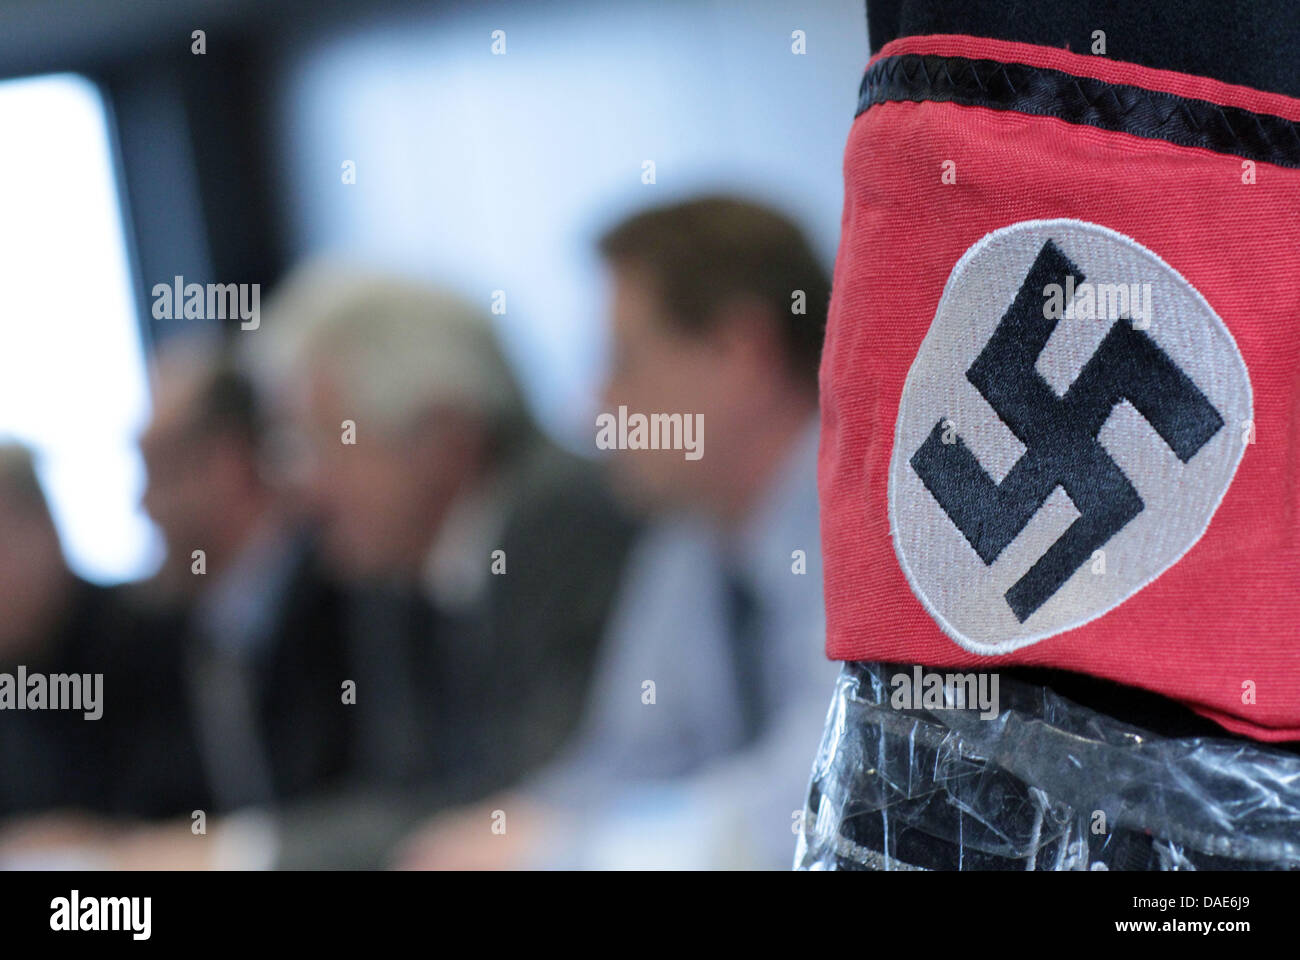 The jacket of the perpetrator with an armband and swastika symbol are presented at a press conference in police - Stock Image